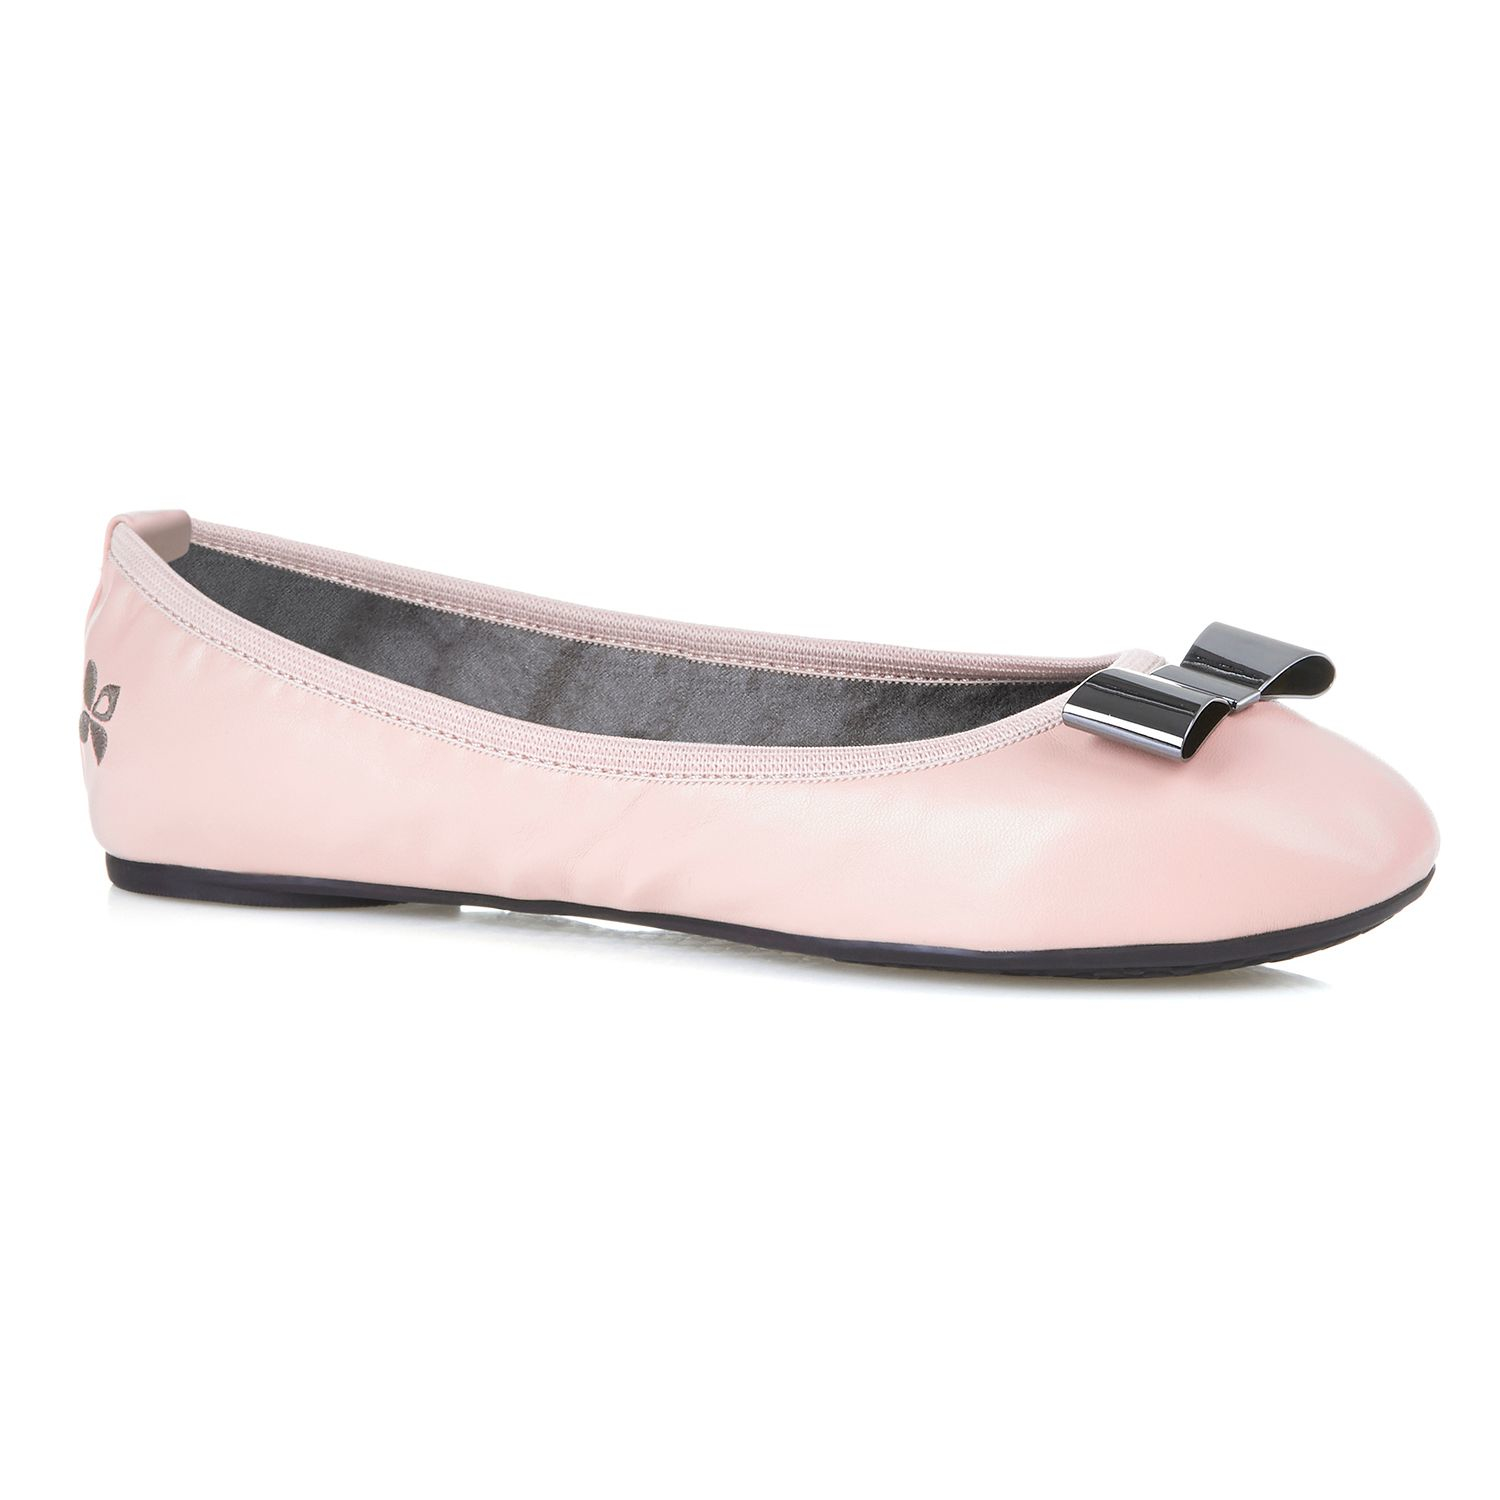 butterfly twists chloe ballerina shoes in pink lyst. Black Bedroom Furniture Sets. Home Design Ideas